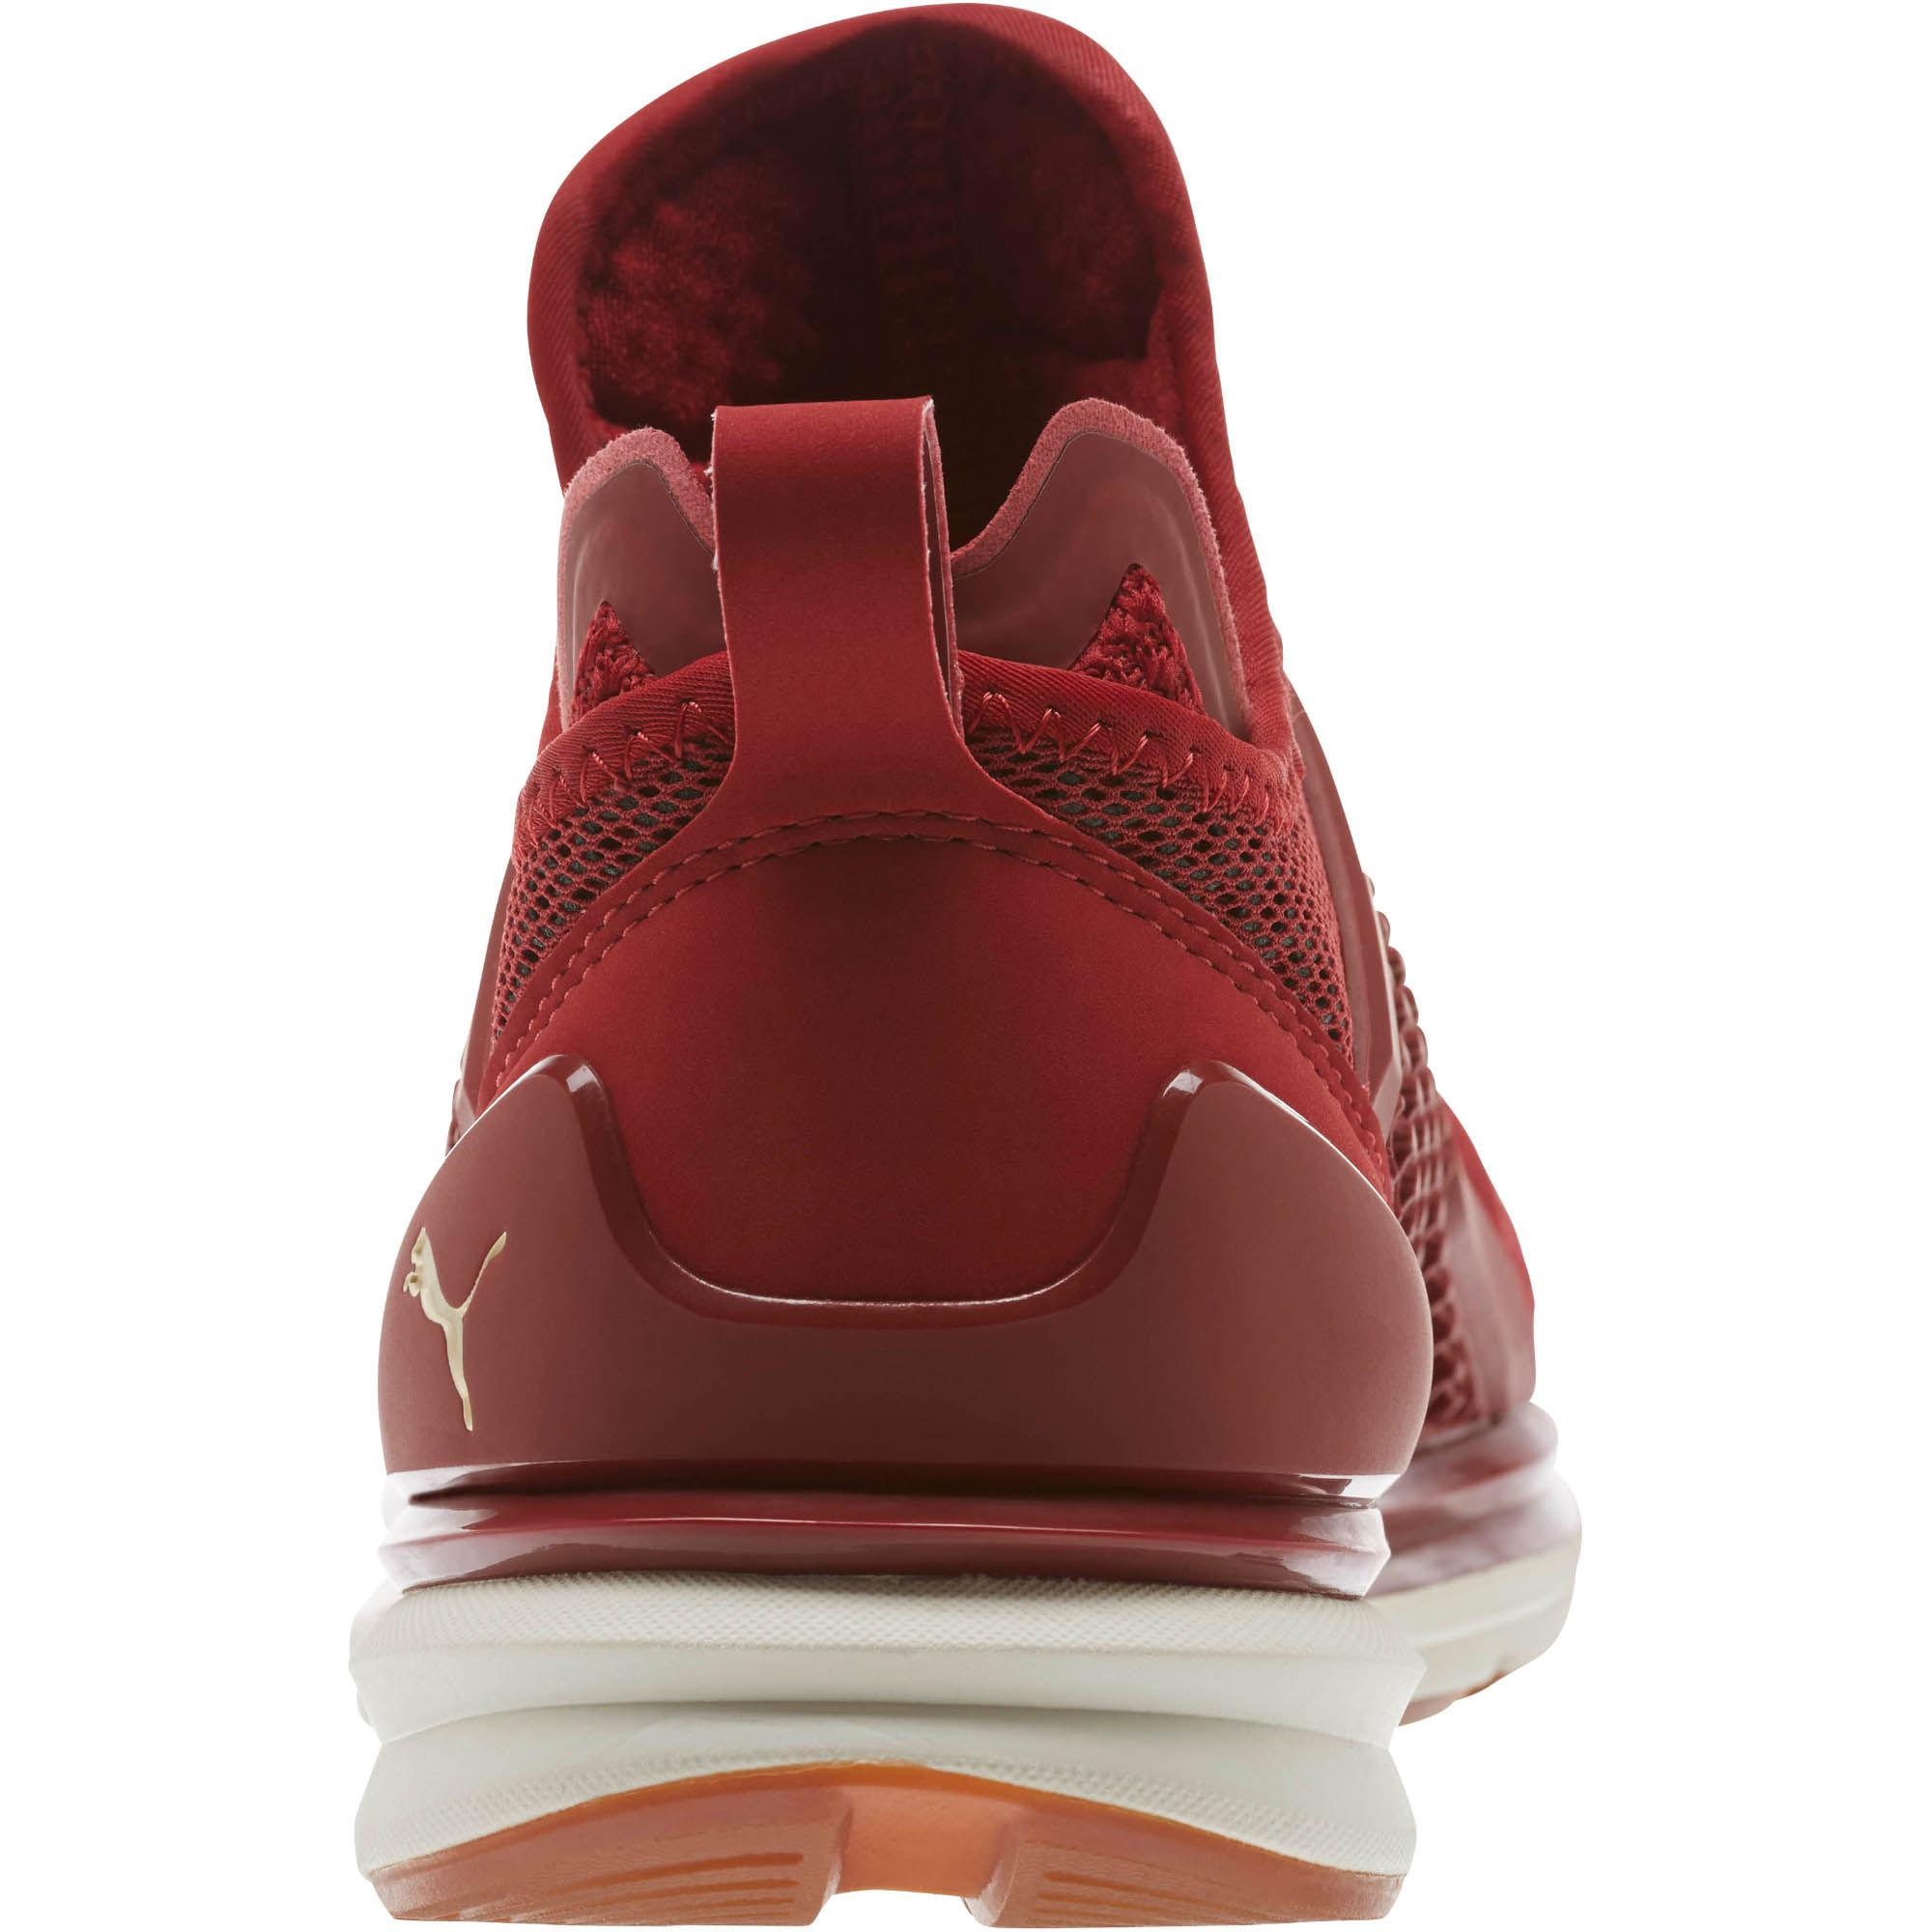 new style 13782 d3727 PUMA Red Ignite Limitless Weave Women's Running Shoes